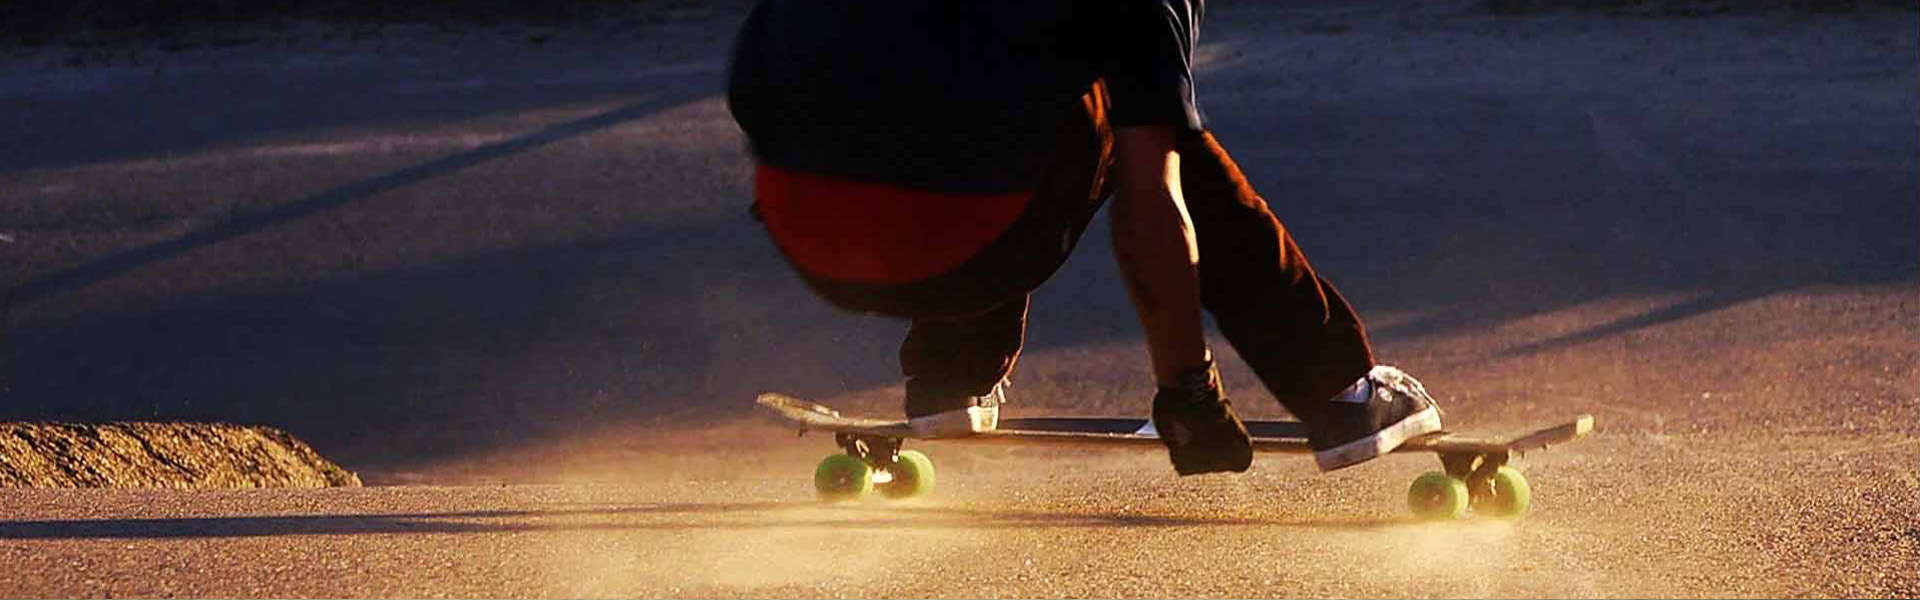 Best Skateboard For Beginners 2018 – Ultimate Buyer's Guide